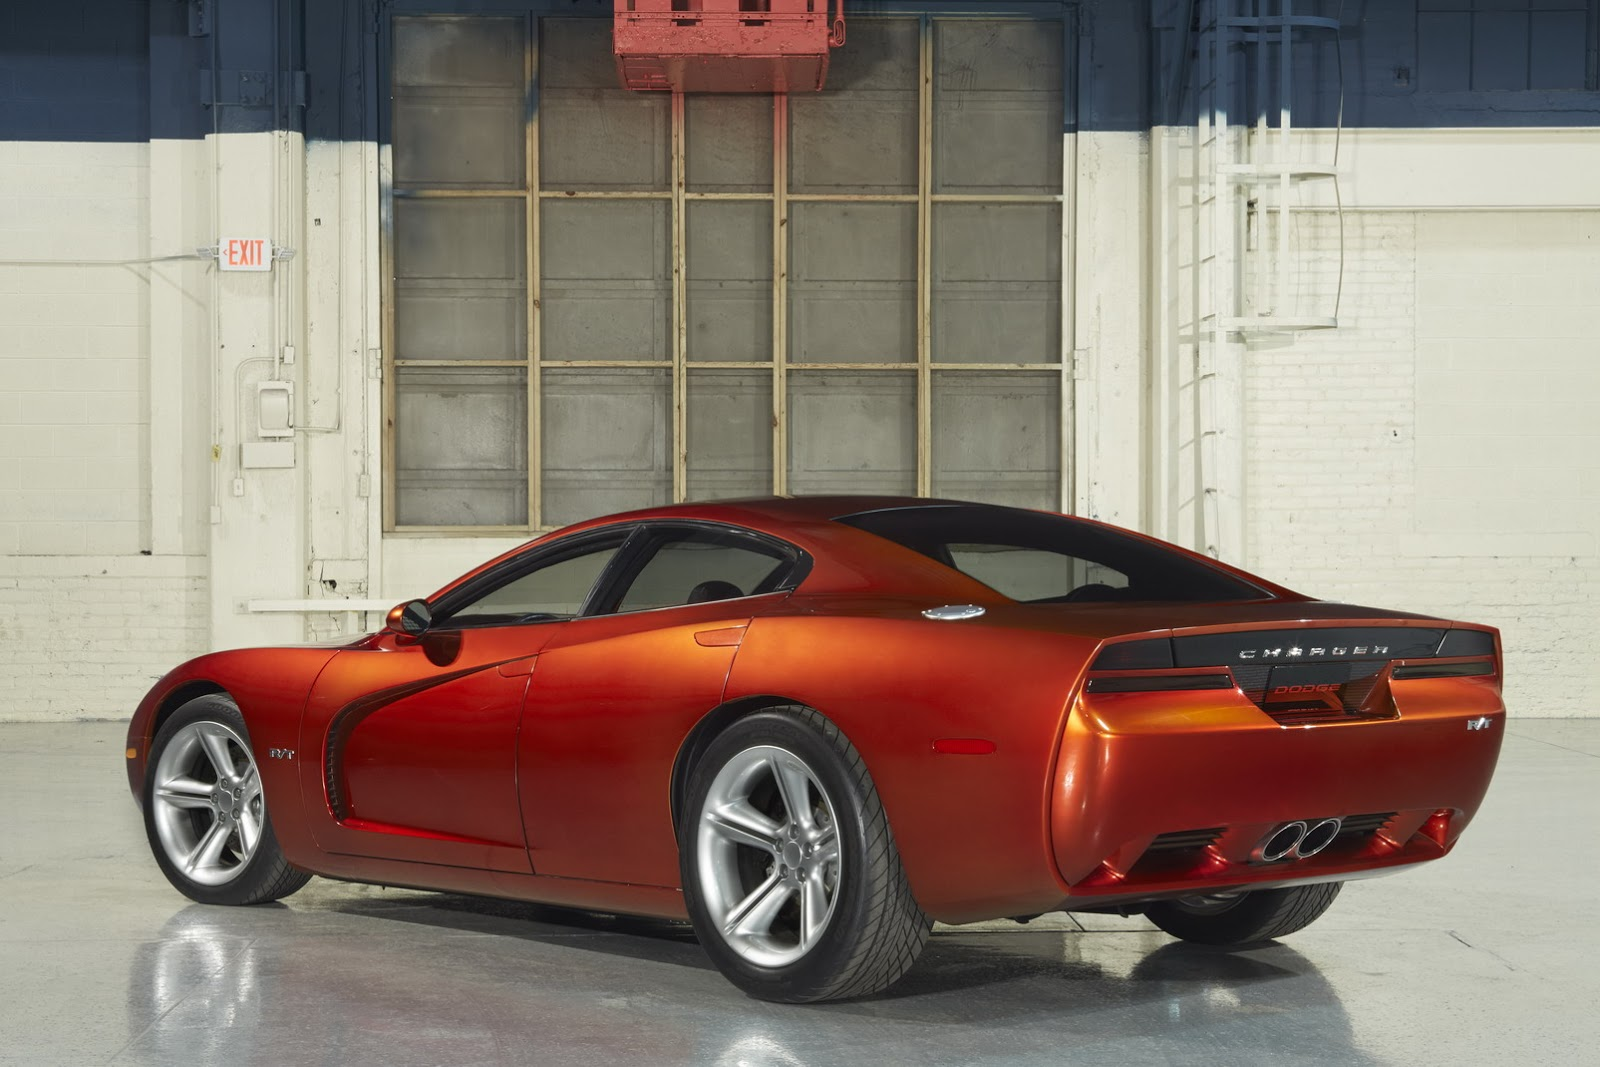 Dodge dodge charger with wing : Dodge Charger Concept - CNG that never was | gazeo.com